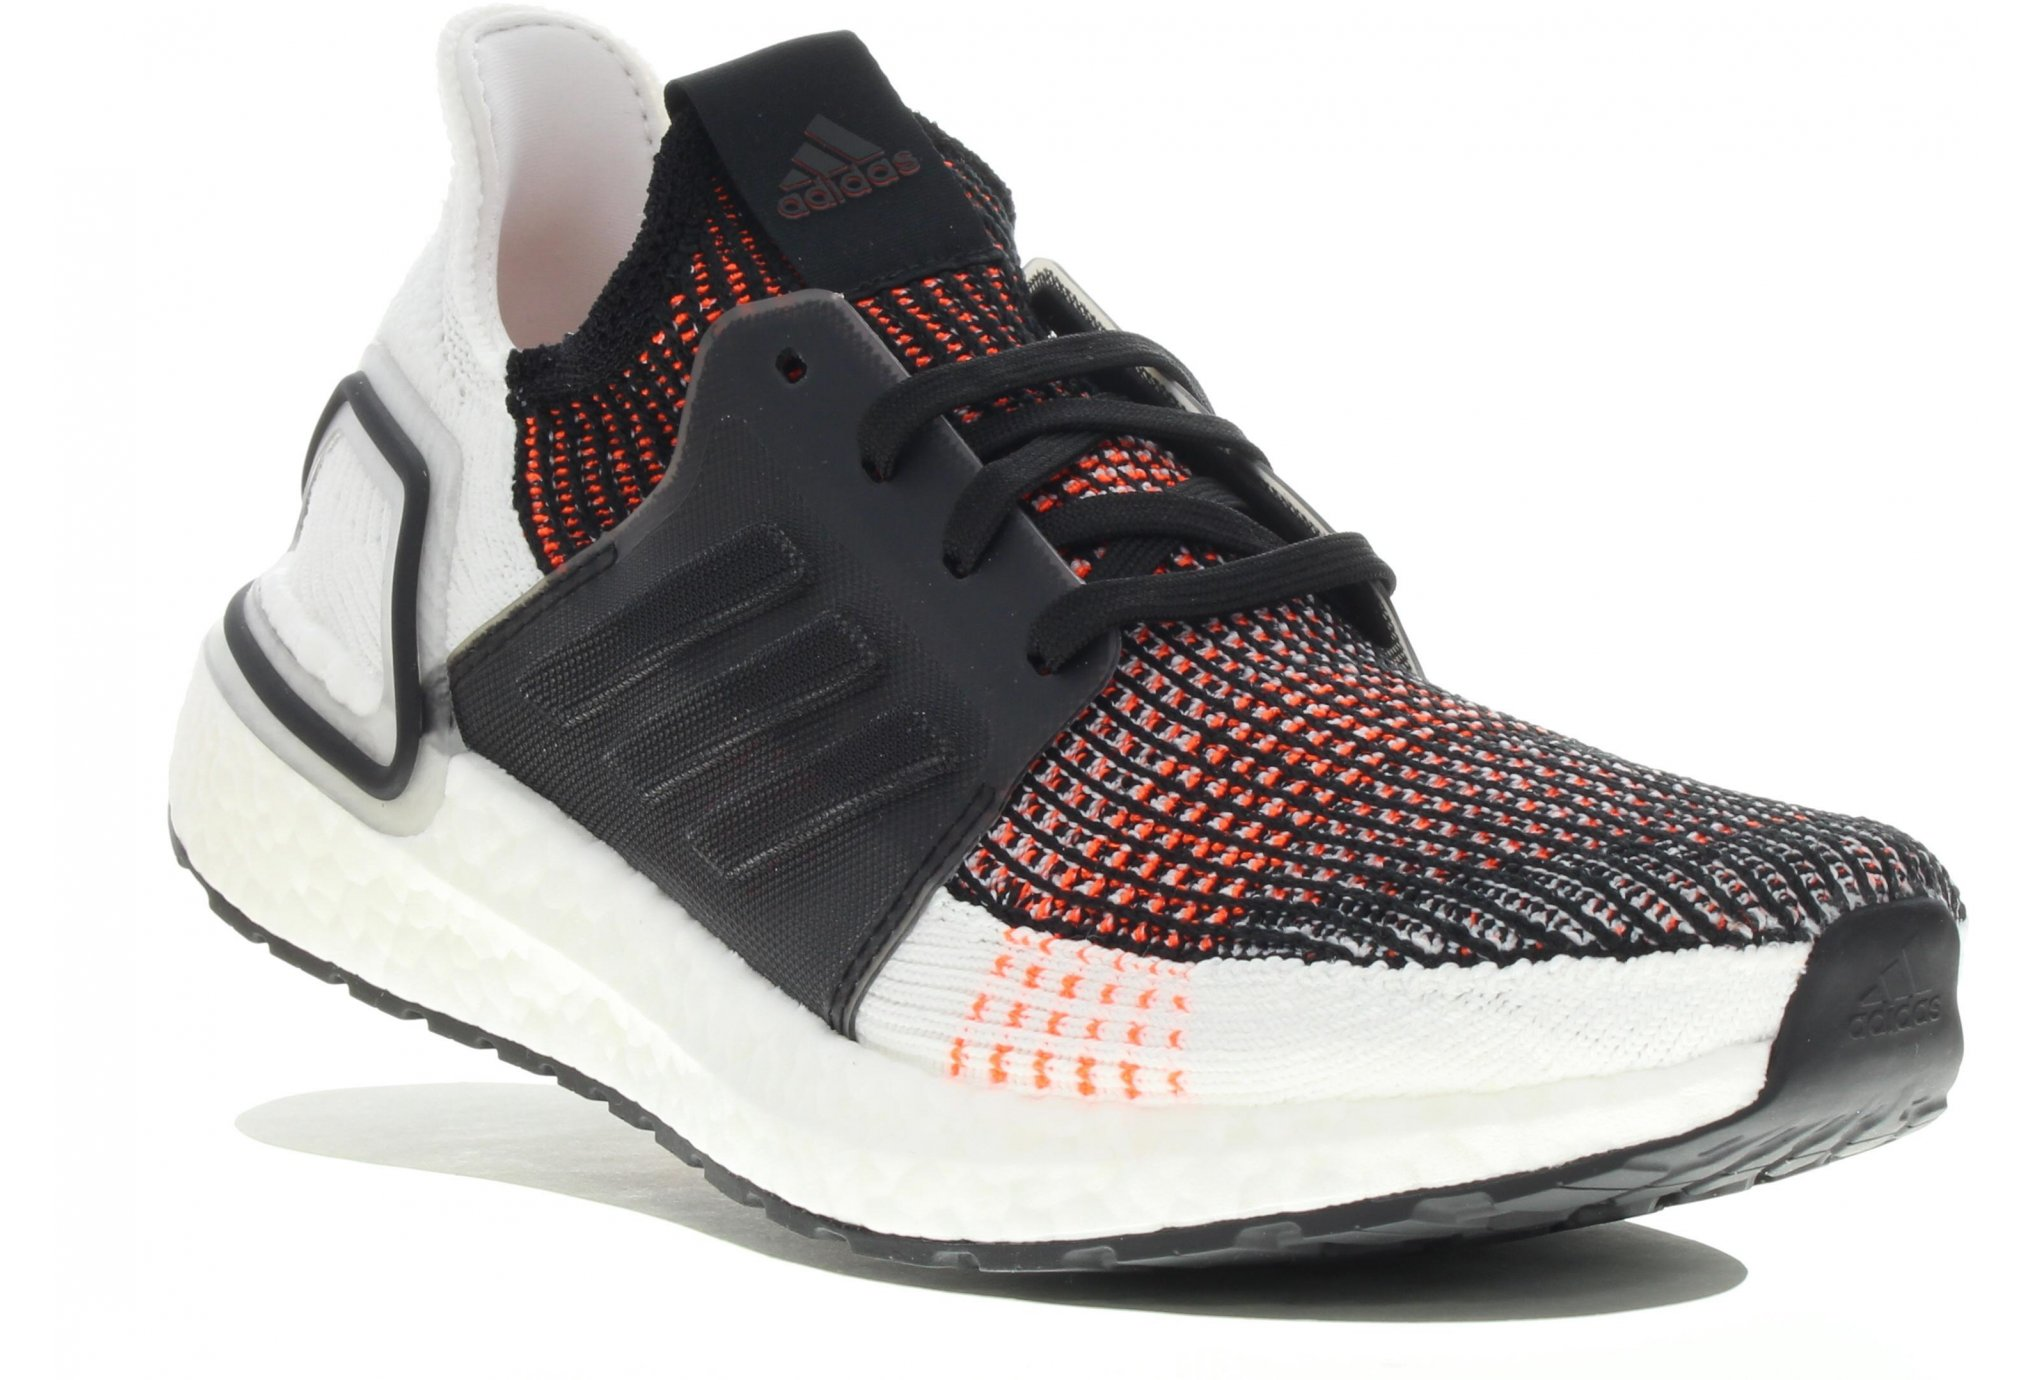 adidas UltraBOOST 19 Chaussures homme